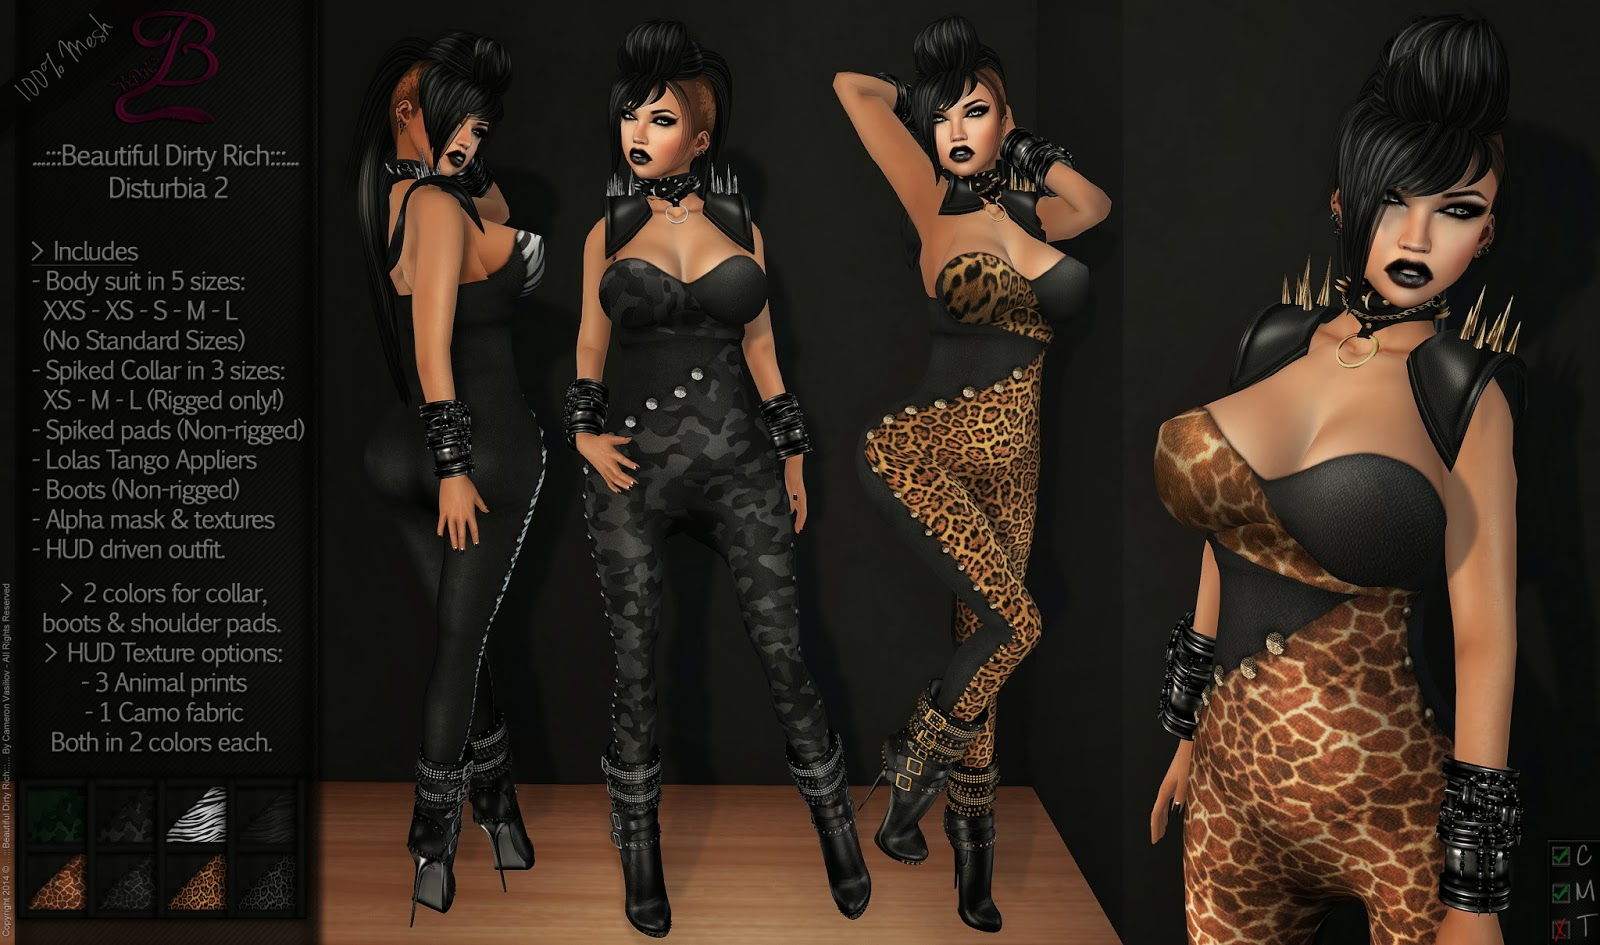 https://marketplace.secondlife.com/p/BDR-Disturbia-2-Complete-Outfit/5792766